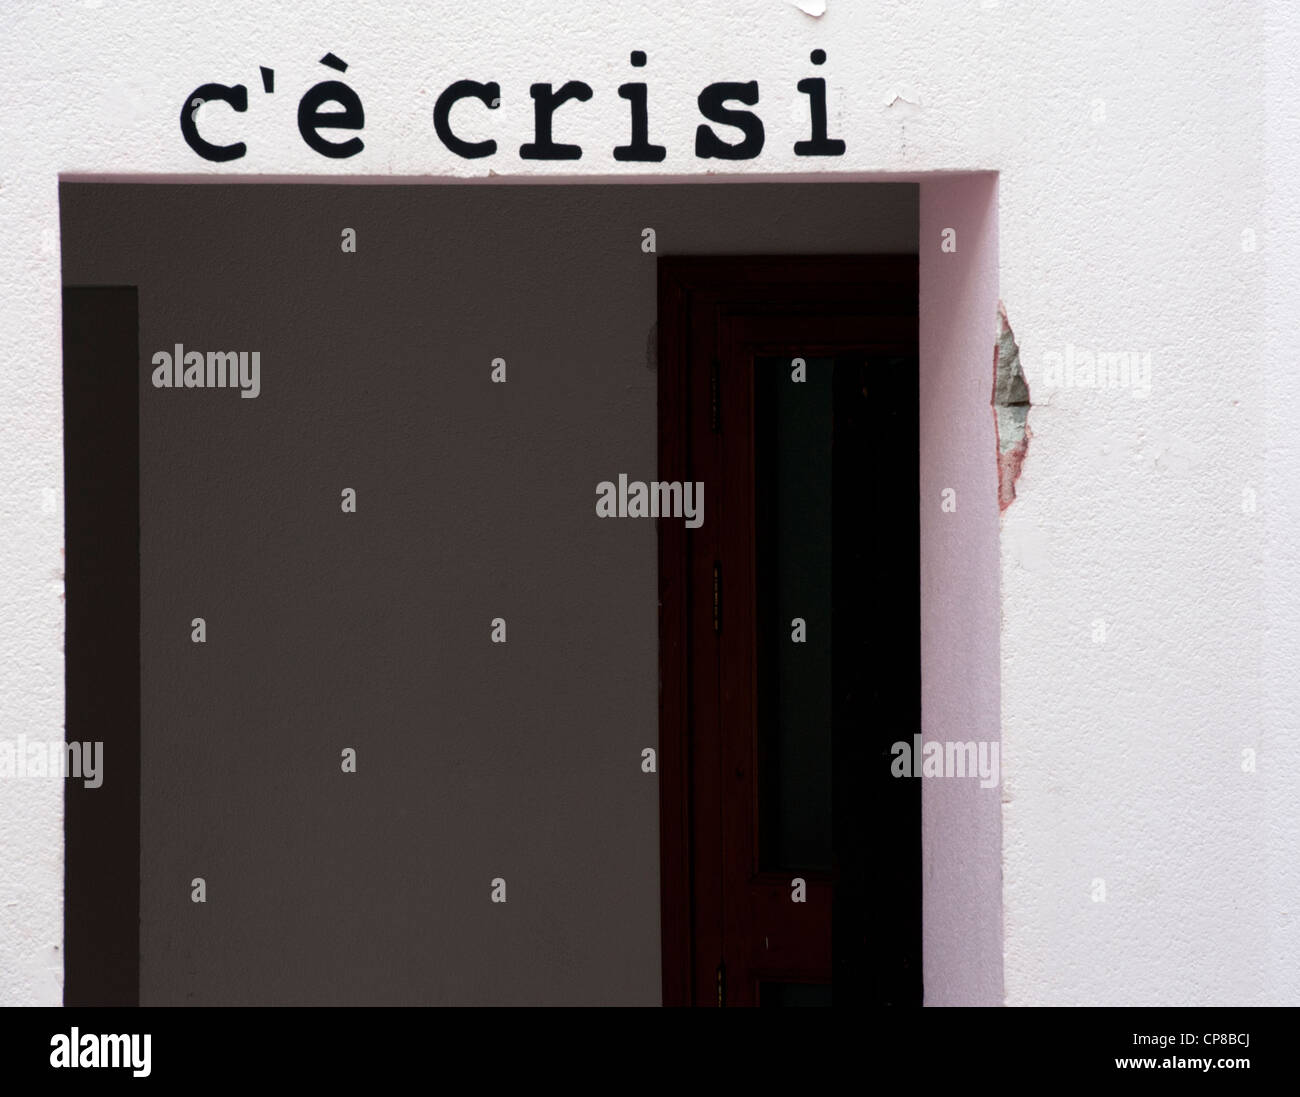 C'e' Crisi - We're In a Depression: On a wall in Cefalu, Sicily - Stock Image